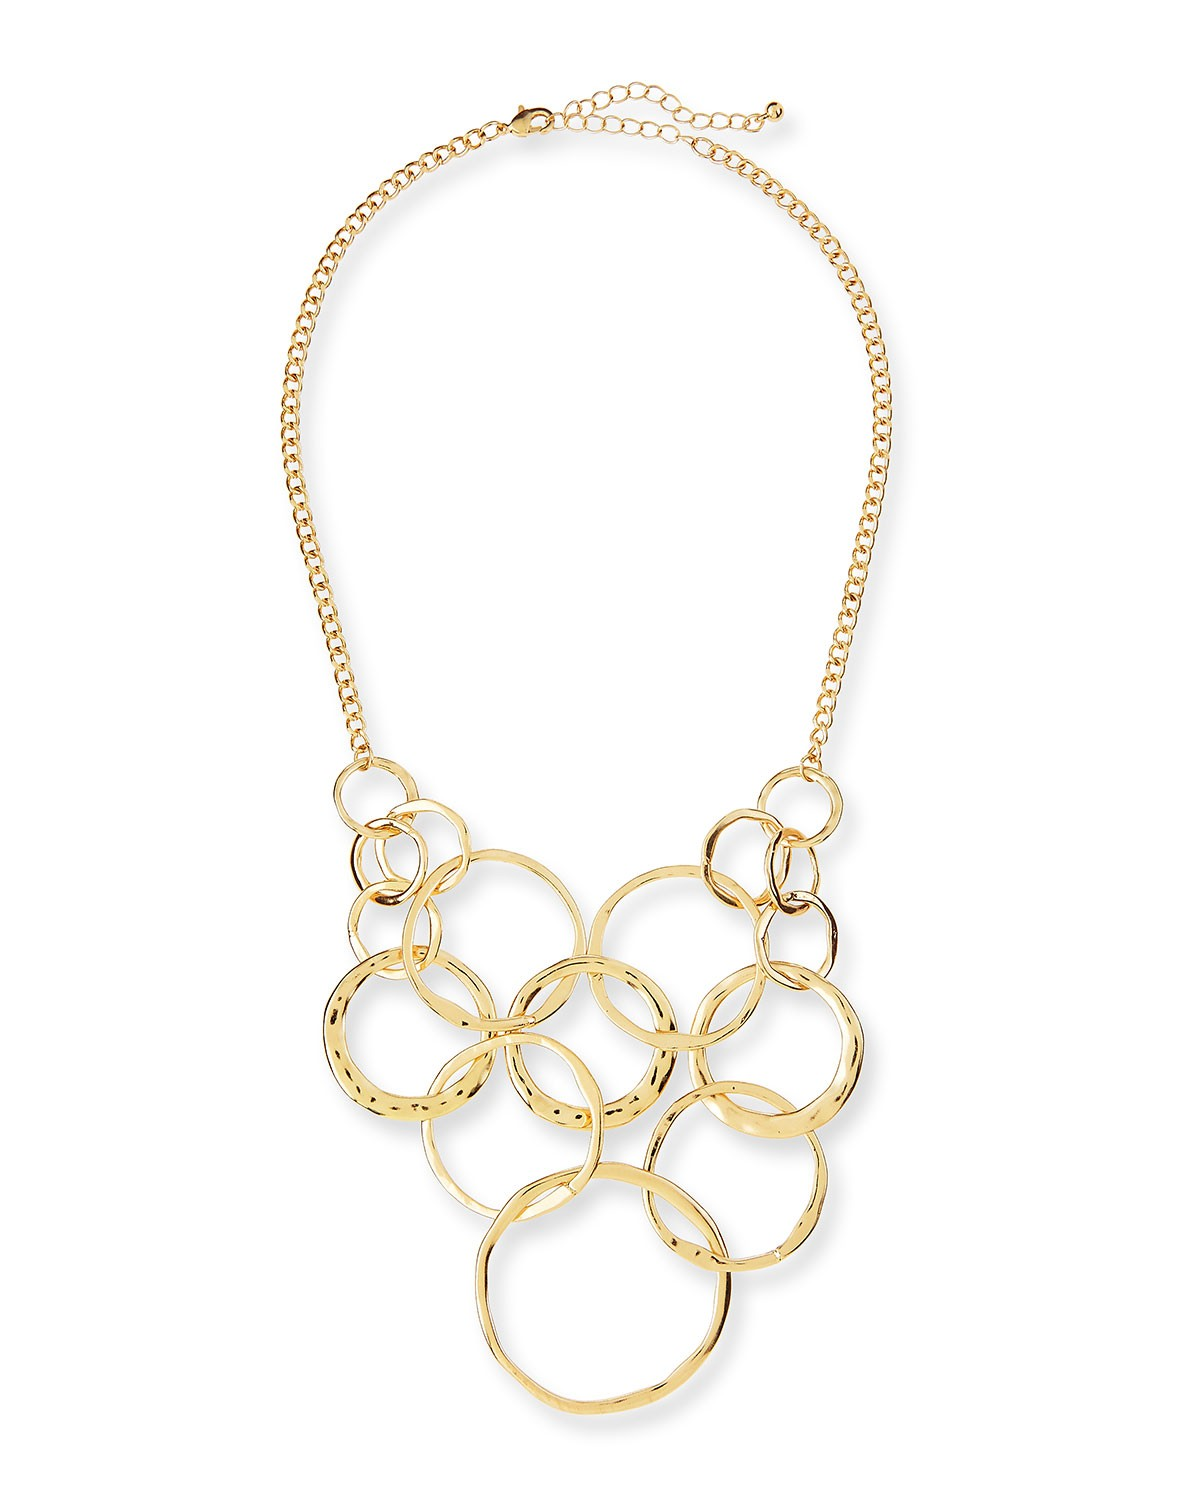 Long Circles Chain Bib Necklace, Golden - Jules Smith - Gold (ONE SIZE)